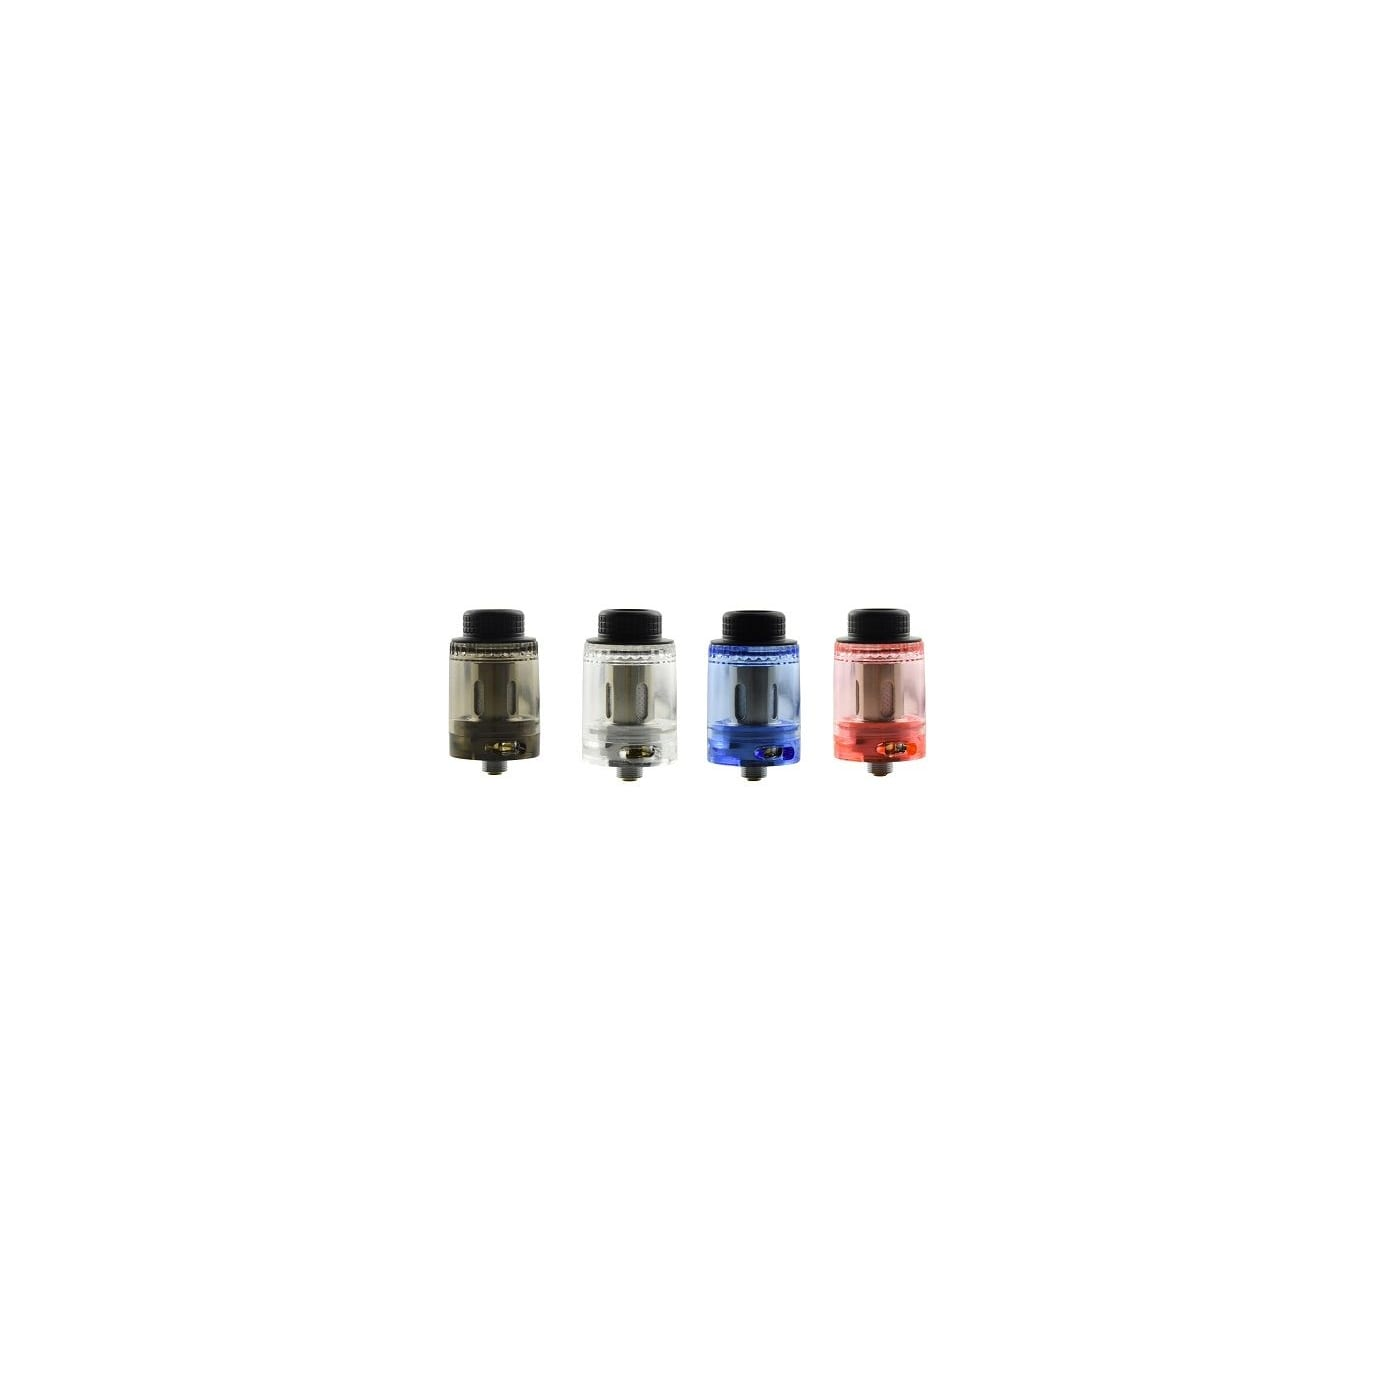 Blitz Mate Disposable Mesh Tank - 3 Pack